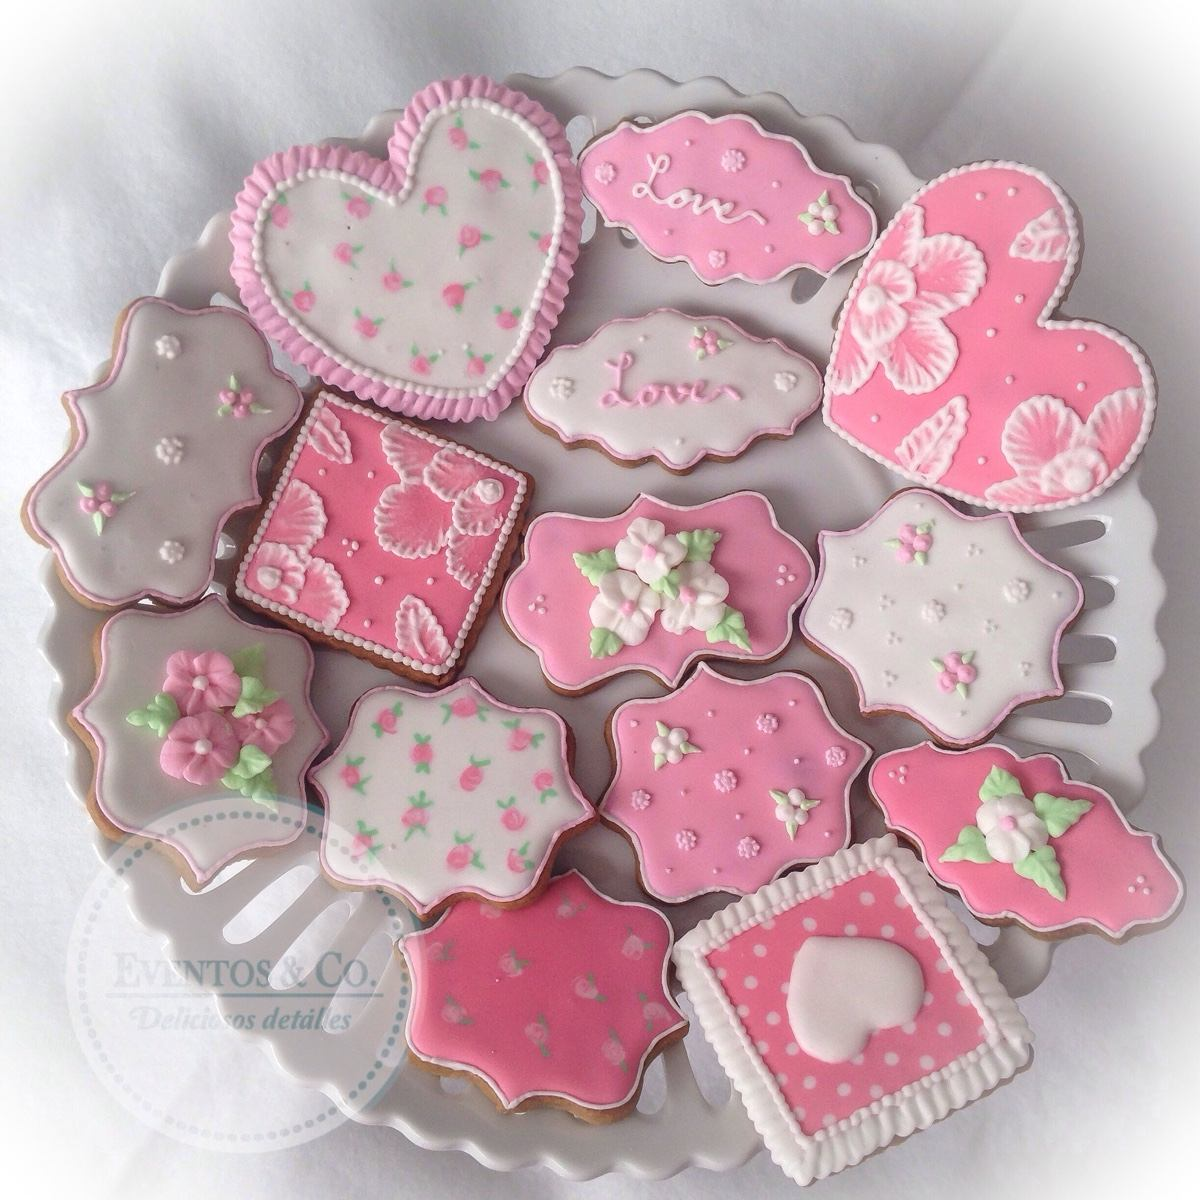 Galletas Decoradas Baby Shower Galletas Decoradas Mesa De Dulces Recuerdos Baby Shower